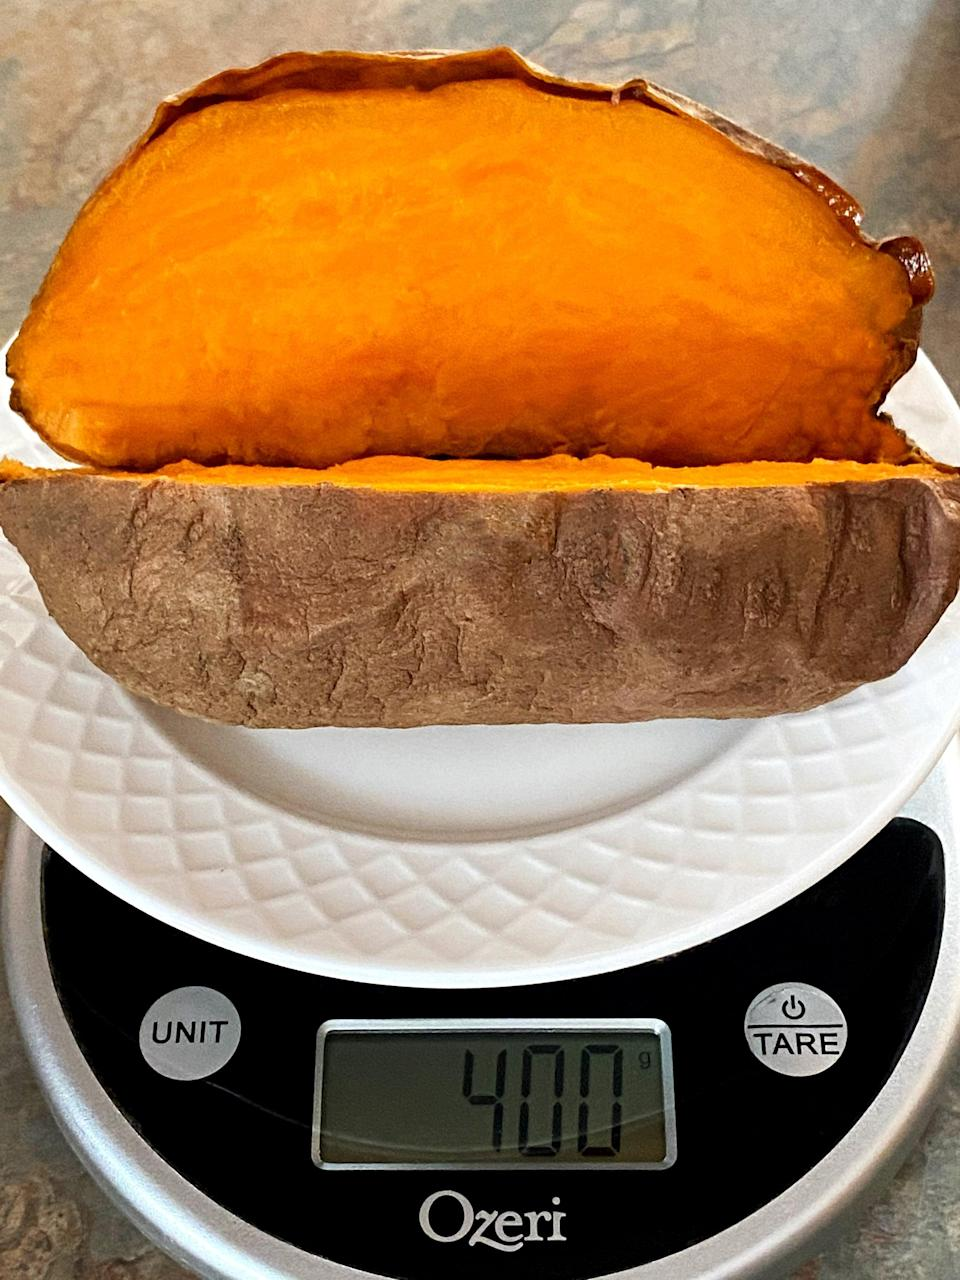 """<p>I don't weight or measure my food, but I was curious to know the <a href=""""https://www.popsugar.com/fitness/How-Many-Calories-Sweet-Potato-43399959"""" class=""""link rapid-noclick-resp"""" rel=""""nofollow noopener"""" target=""""_blank"""" data-ylk=""""slk:nutritional info"""">nutritional info</a> of the daily sweet potato I was eating. Of the three varieties I roasted, they were generously-sized weighing about 400 grams (sometimes 500). Here's the nutritional info from <a href=""""https://www.verywellfit.com/recipe-nutrition-analyzer-4157076"""" class=""""link rapid-noclick-resp"""" rel=""""nofollow noopener"""" target=""""_blank"""" data-ylk=""""slk:VeryWell.com"""">VeryWell.com</a> for 400 grams of a regular sweet potato (left) and a Japanese sweet potato (right). </p>  <p>90 percent of the time, I ate my sweet potato with one-pound (16 ounces) of steamed veggies, which is just a small bag you'd get in the freezer section. It offered about 125 calories, so this was a perfectly-sized 500- to 600-calorie meal for me. When I first started eating this lunch, I'd sprinkle Trader Joe's Everything But the Bagel Seasoning on the veggies, but after a week or so, I really enjoyed it plain!</p> <p>People often ask vegans, """"Where do you get your protein?"""" Just look at the protein from the sweet potato! The pound of broccoli adds another 10 grams.</p>"""